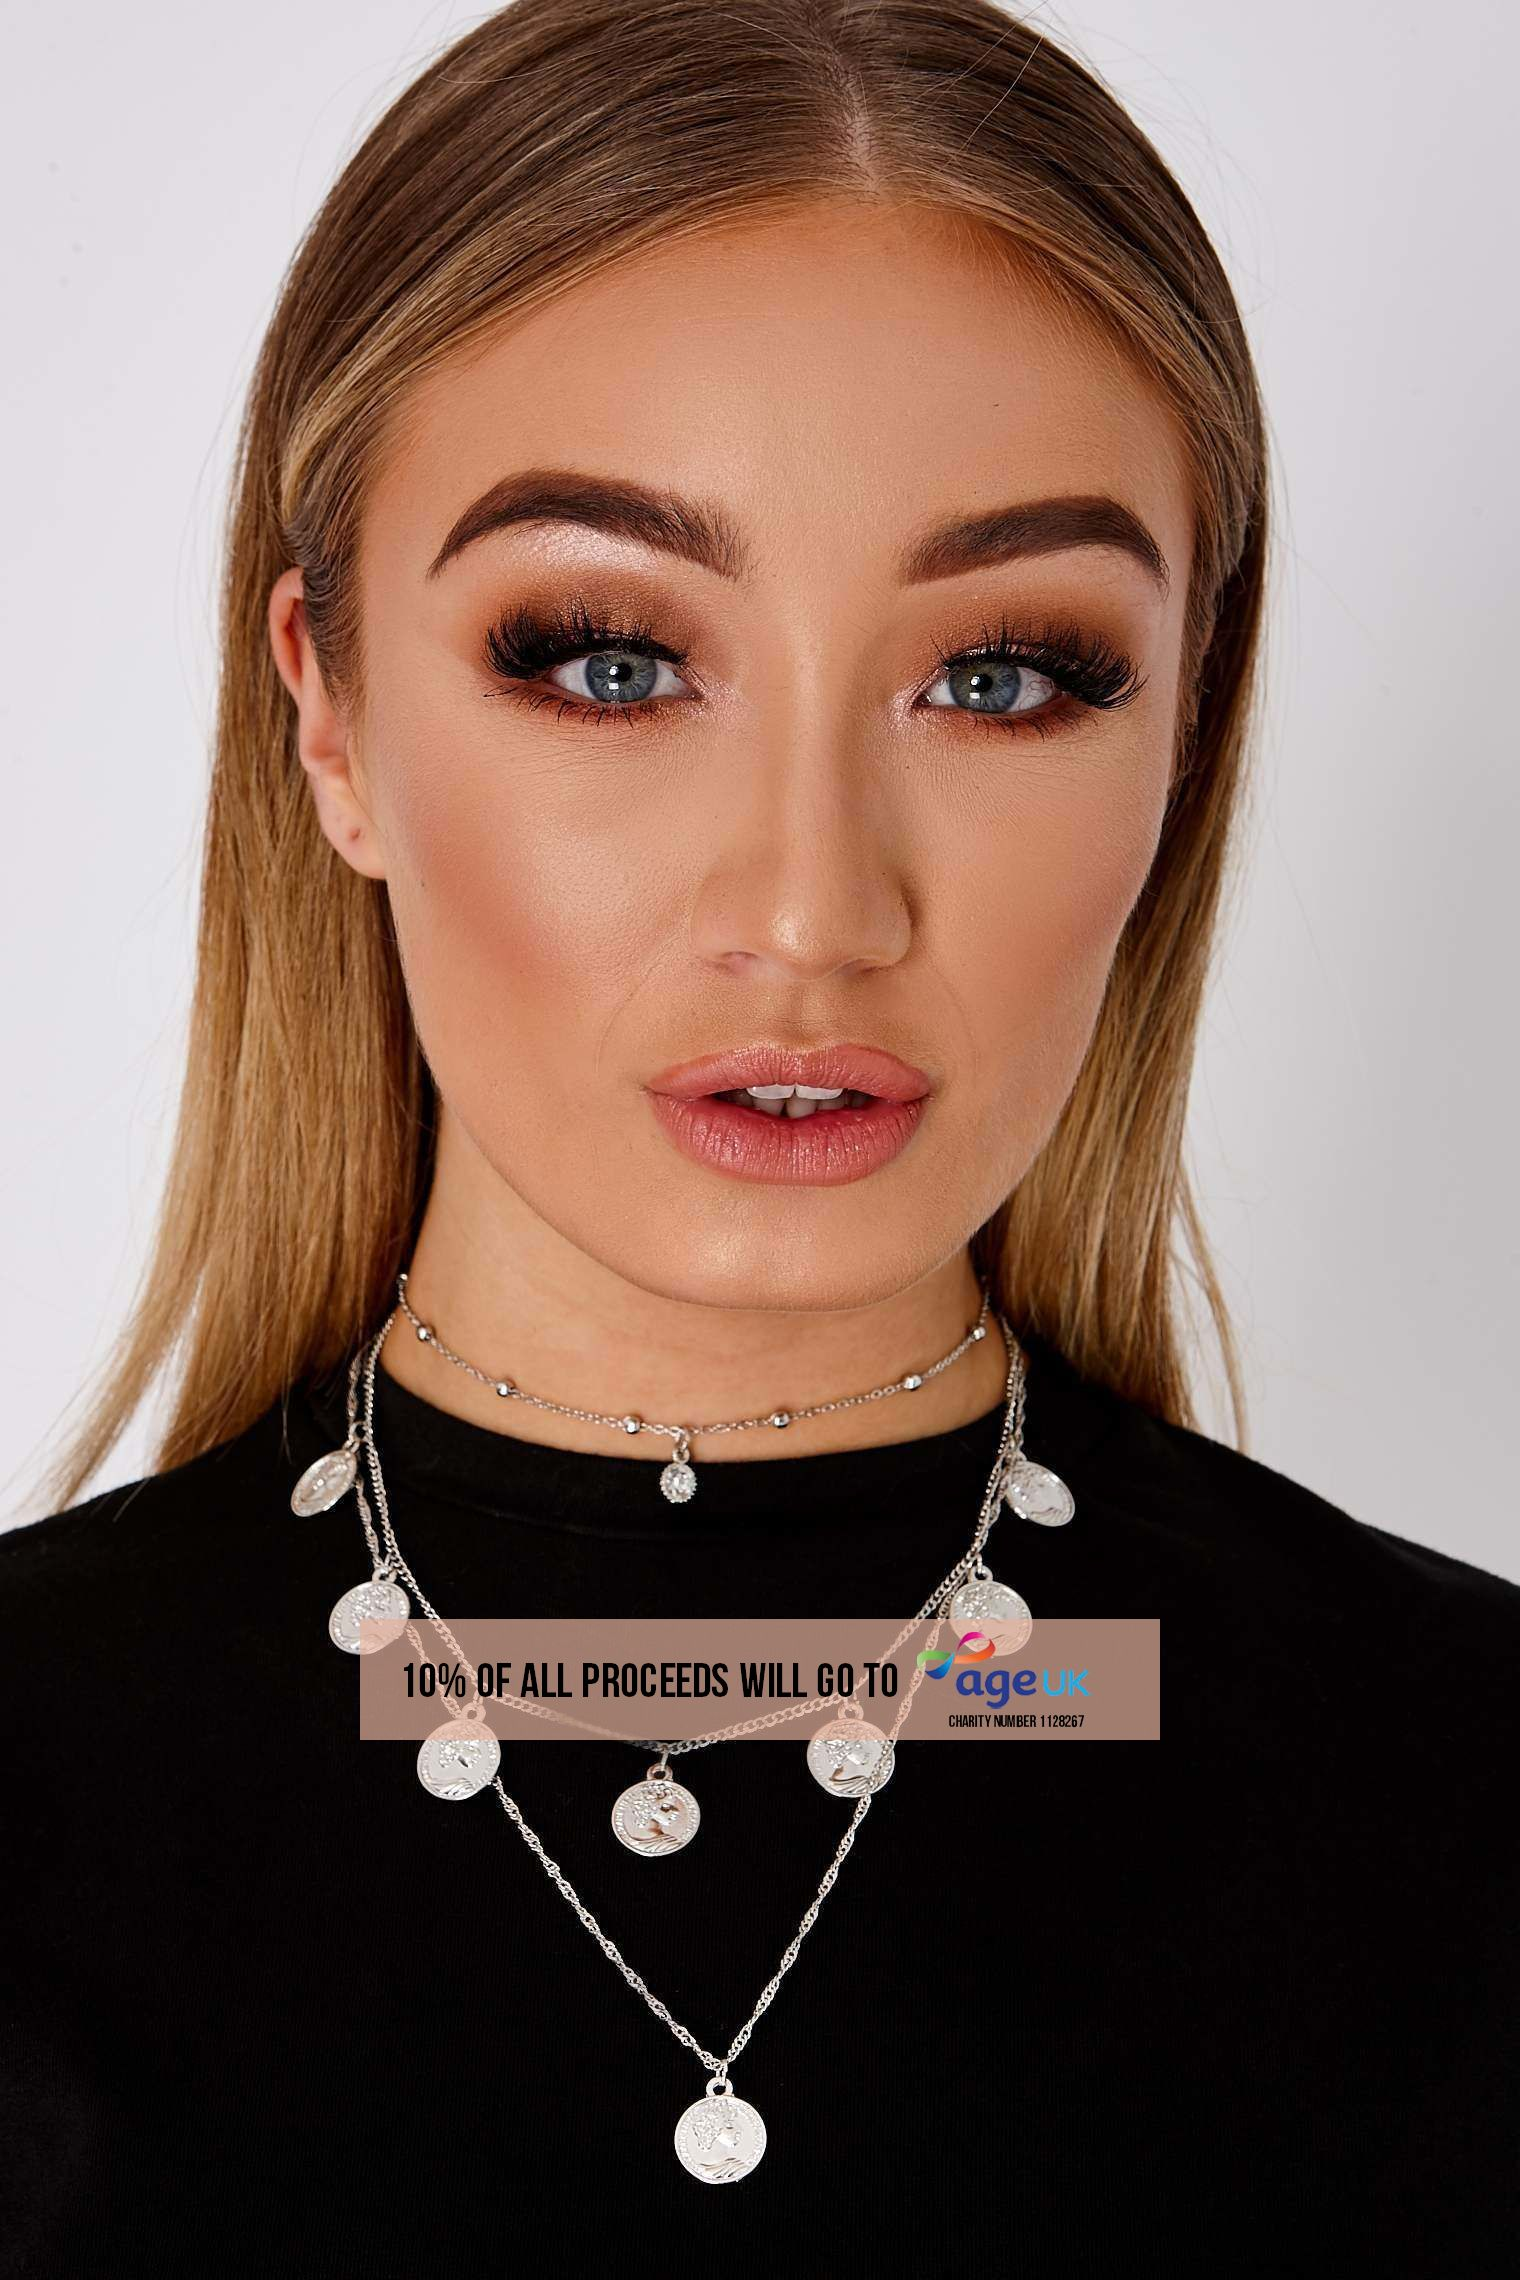 SILVER LONG LAYER CHOKER COIN NECKLACE